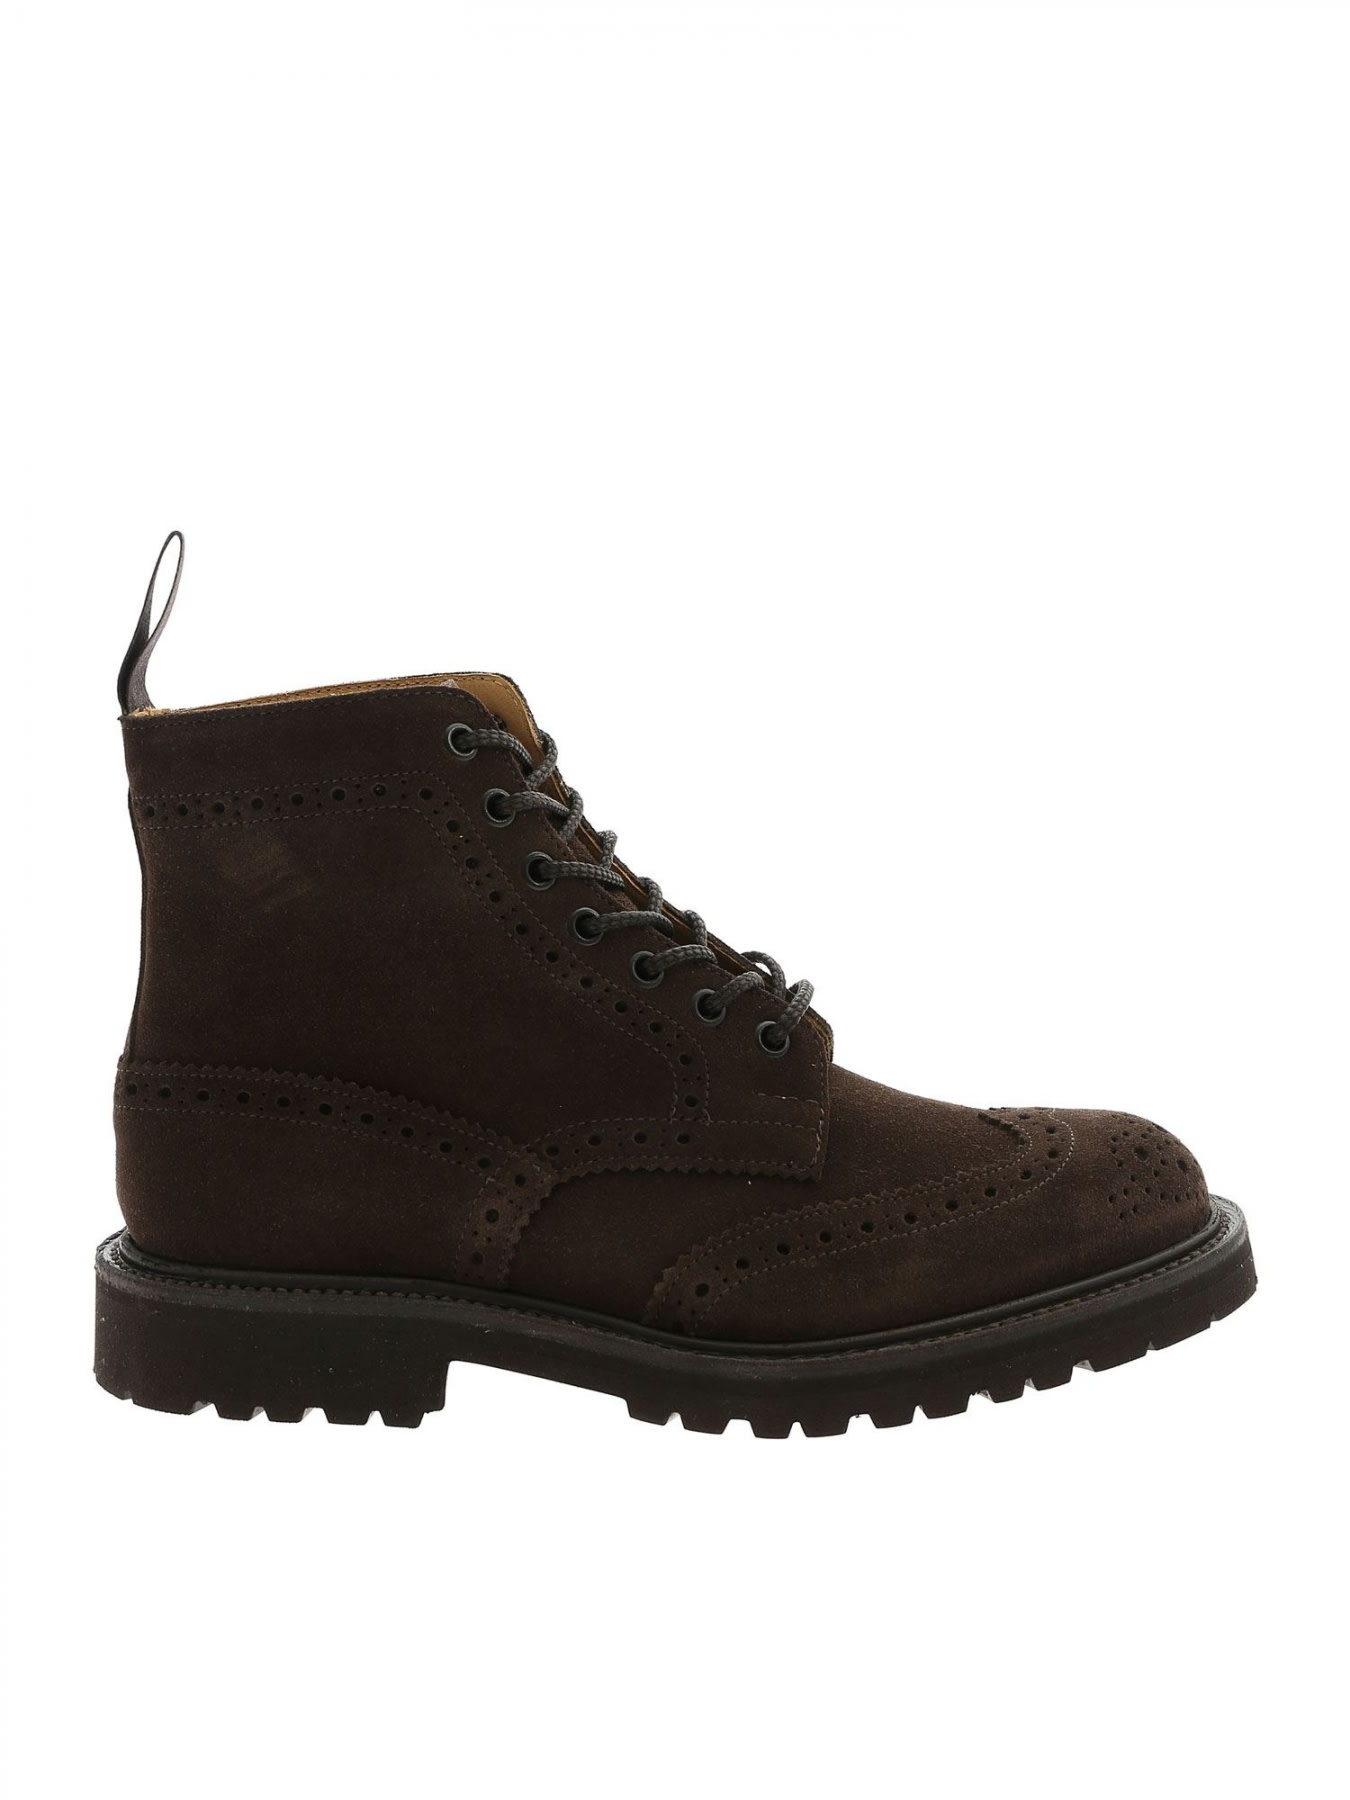 Trickers Suede Boot